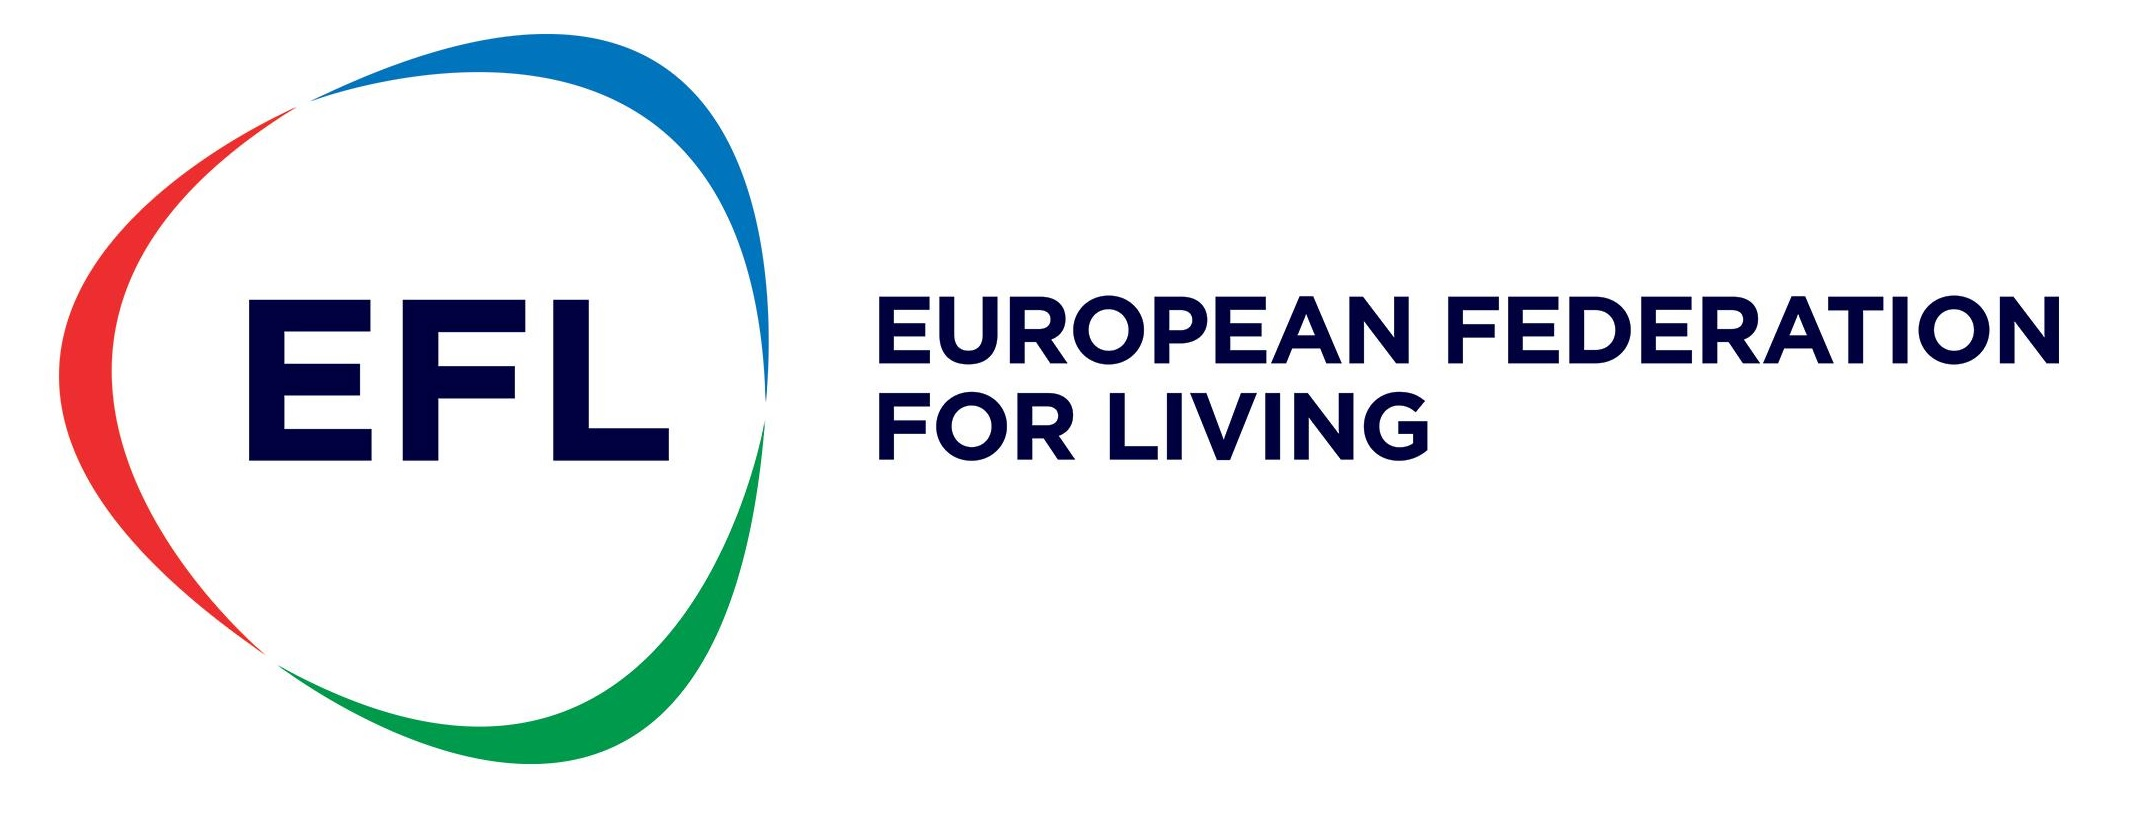 European Federation for Living logo